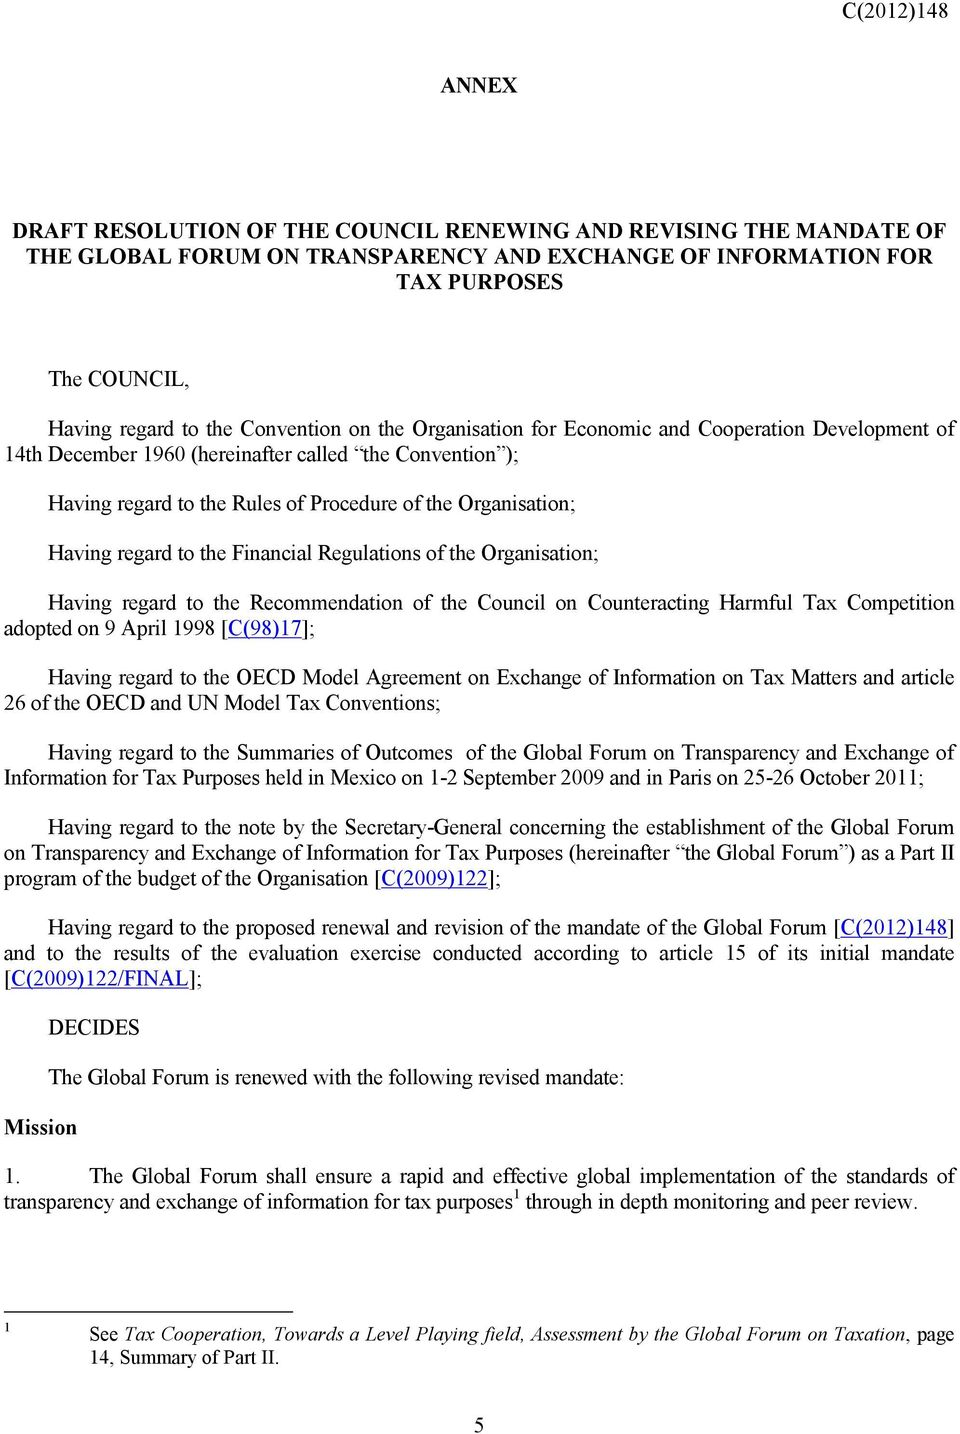 the Financial Regulations of the Organisation; Having regard to the Recommendation of the Council on Counteracting Harmful Tax Competition adopted on 9 April 1998 [C(98)17]; Having regard to the OECD